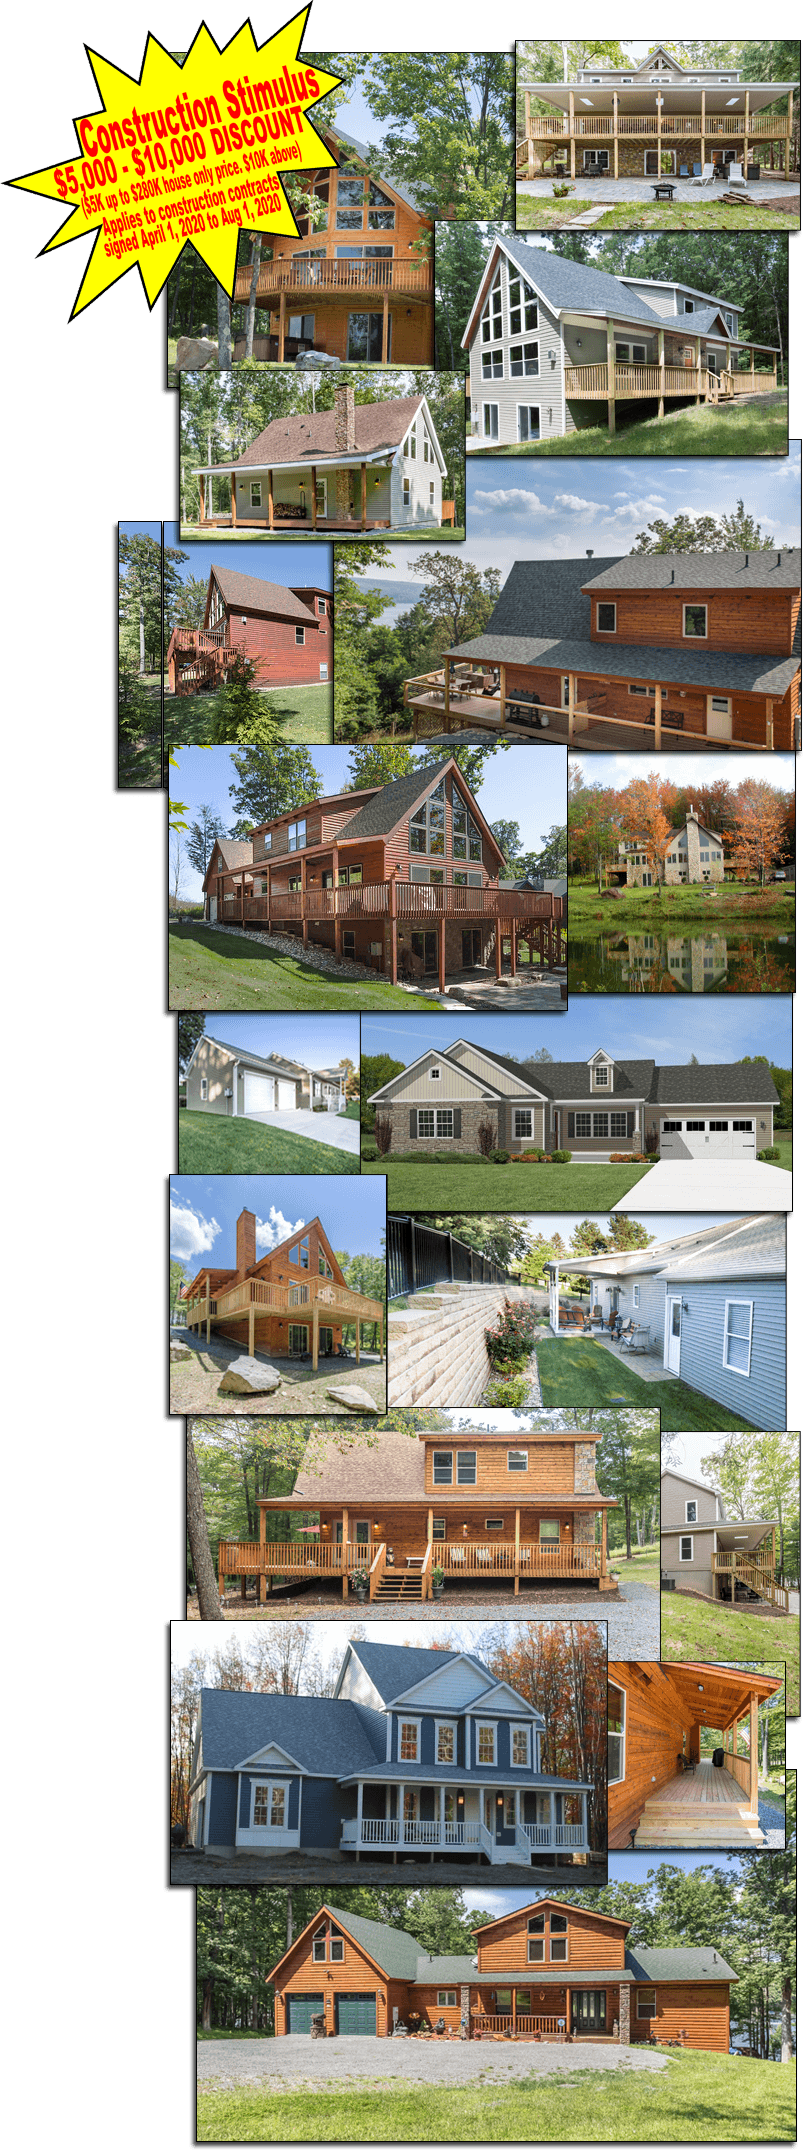 Construction Stimulus $5,000 to $10,000 discount ($5K up to $280K house only price, $10K above) Applies to construction contracts signed April 1, 2020 to Aug 1, 2020